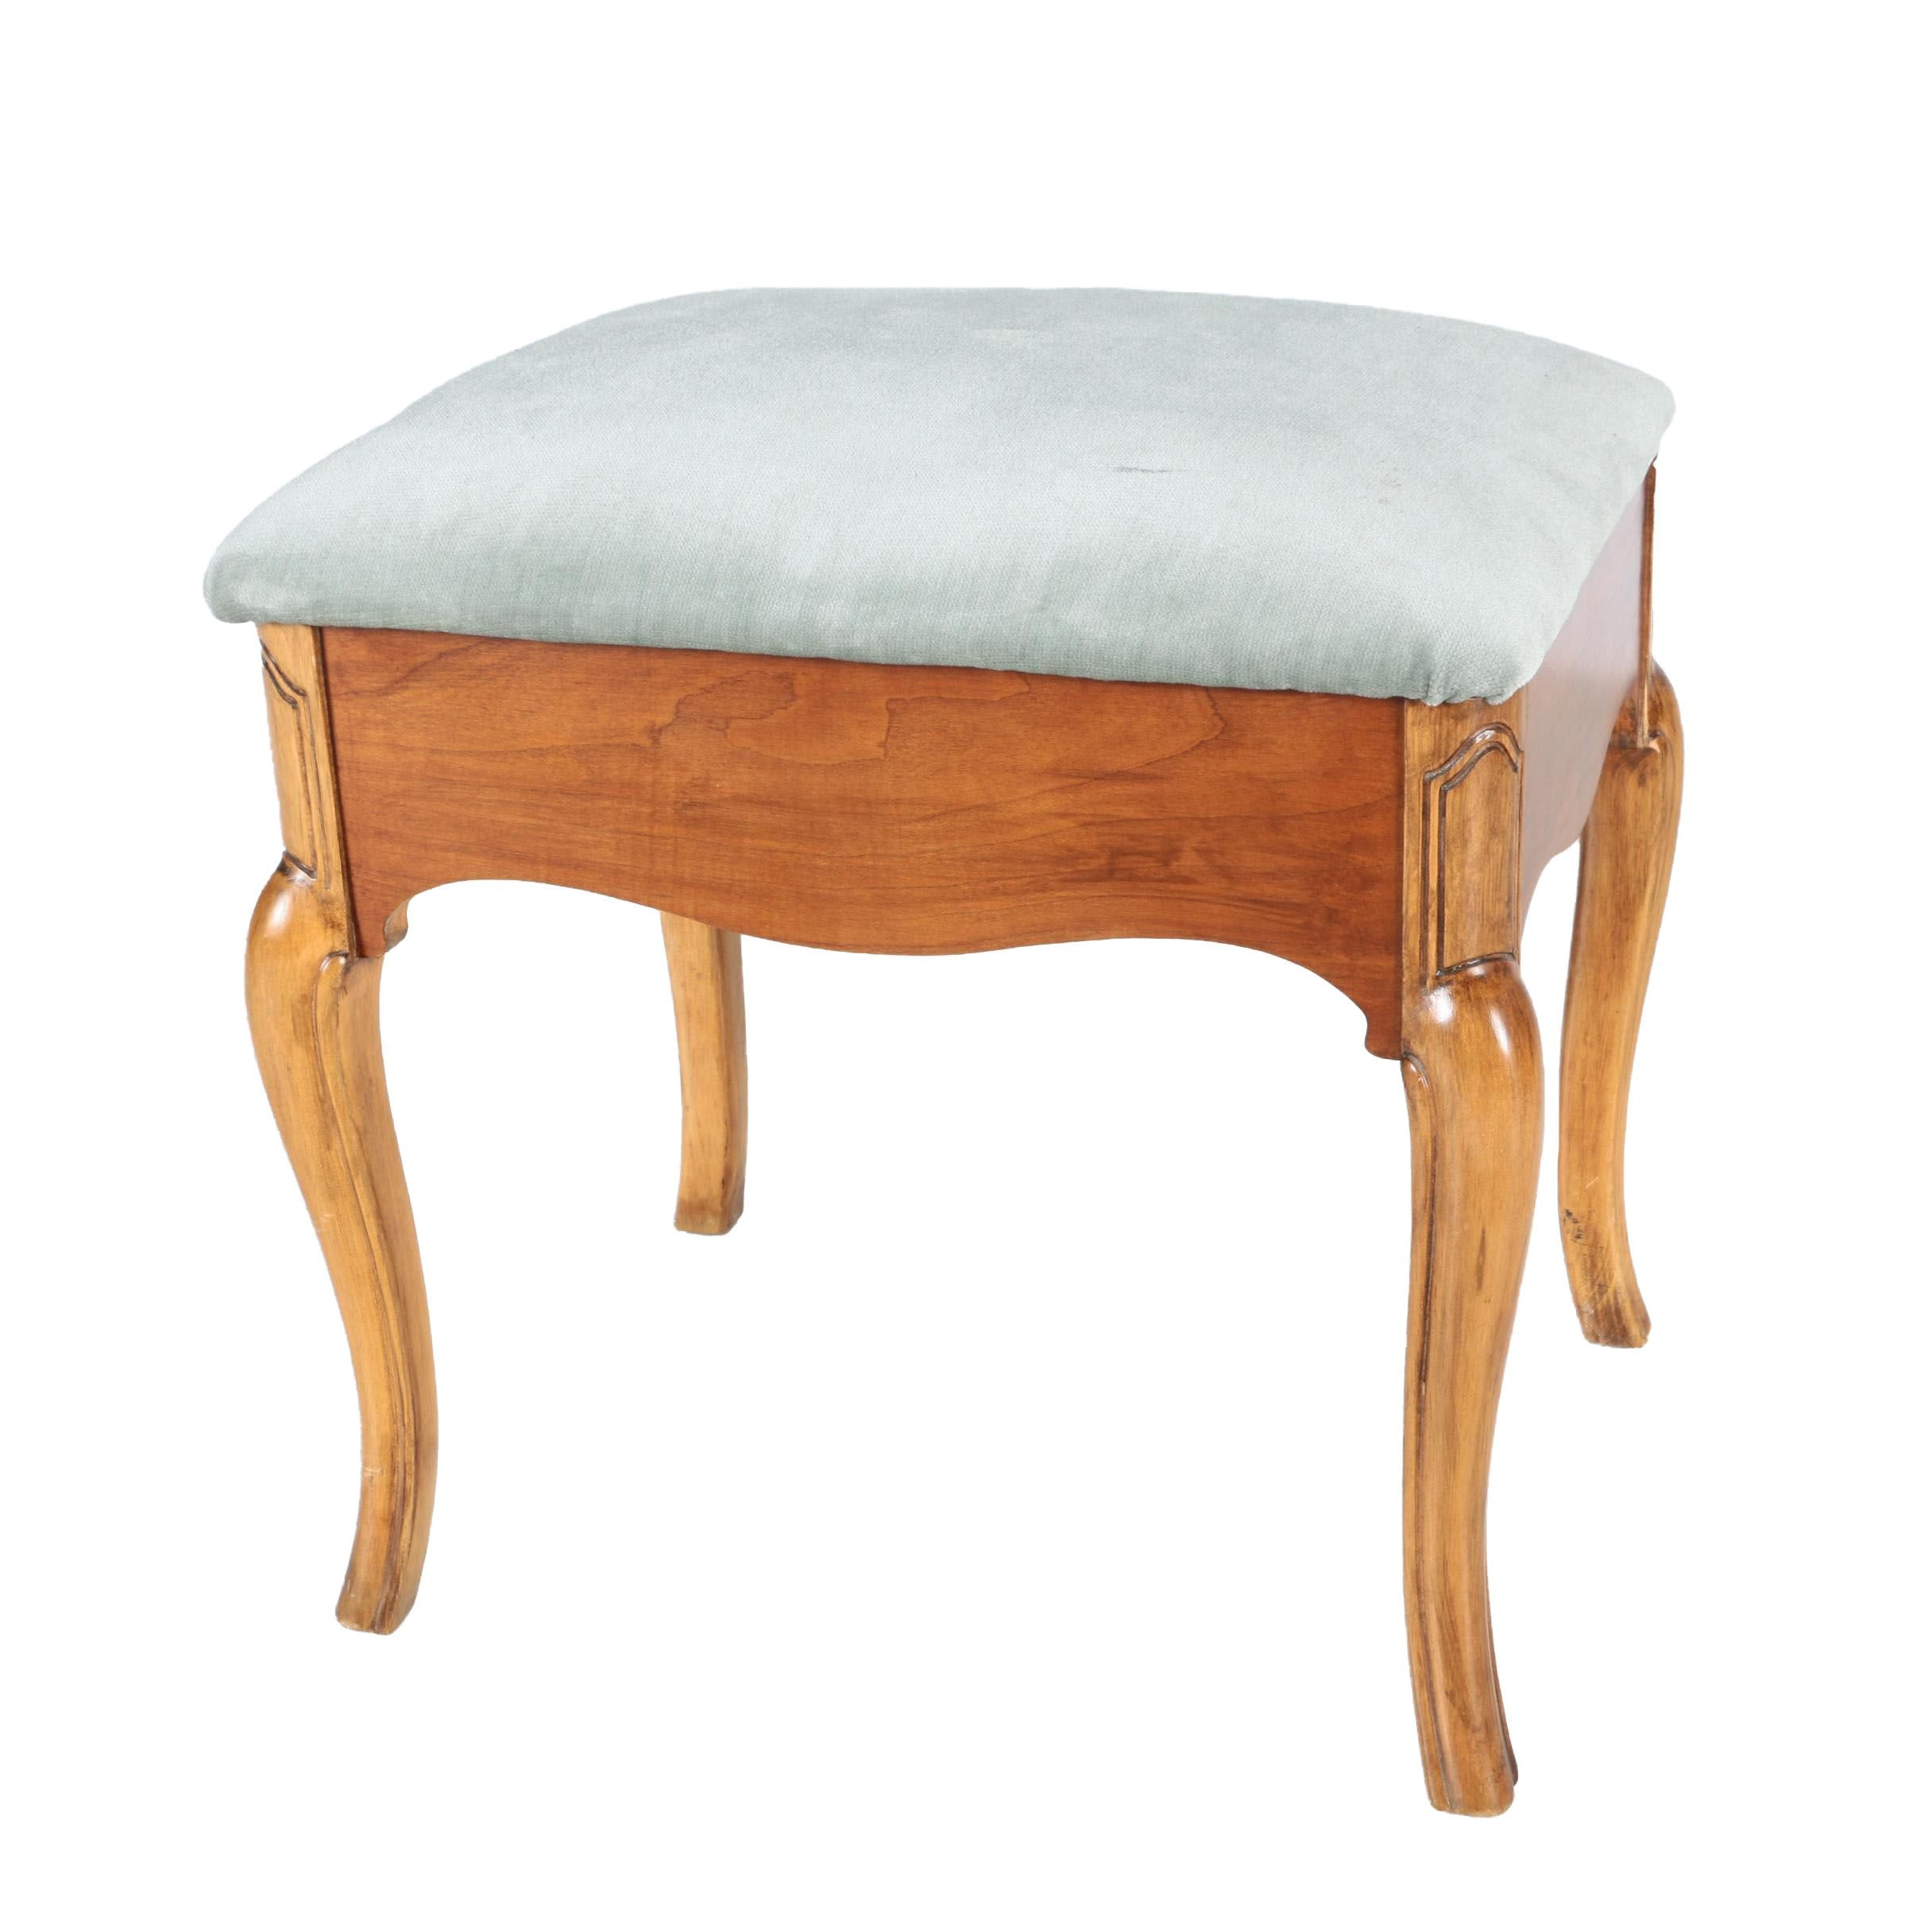 French Provincial Style Vanity Bench with Storage